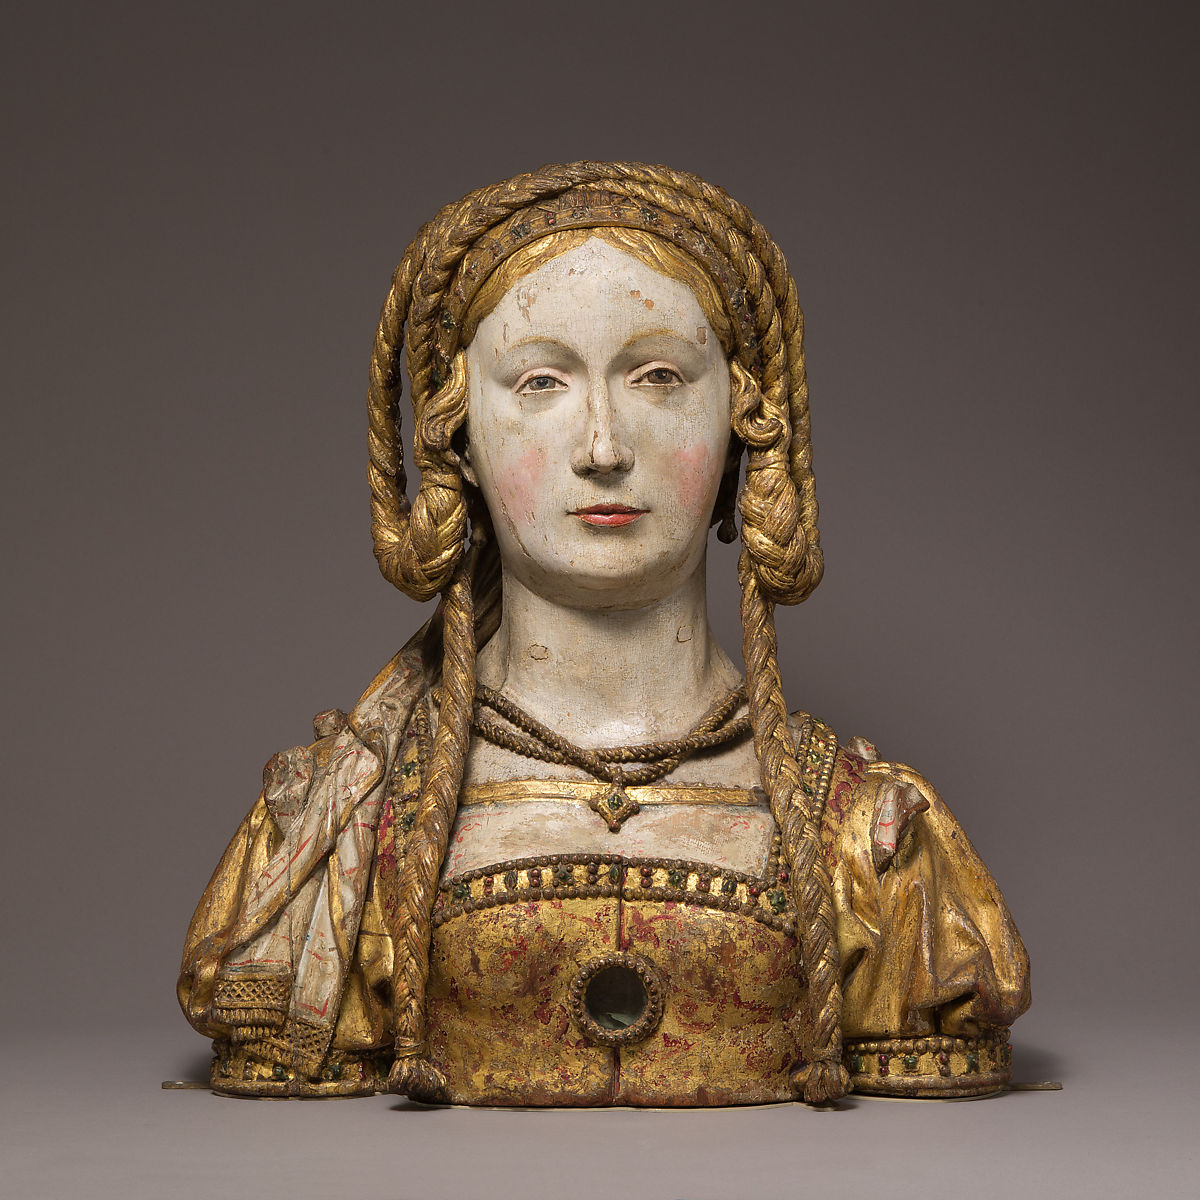 Reliquary Bust of Saint Balbina | South Netherlandish | The Met